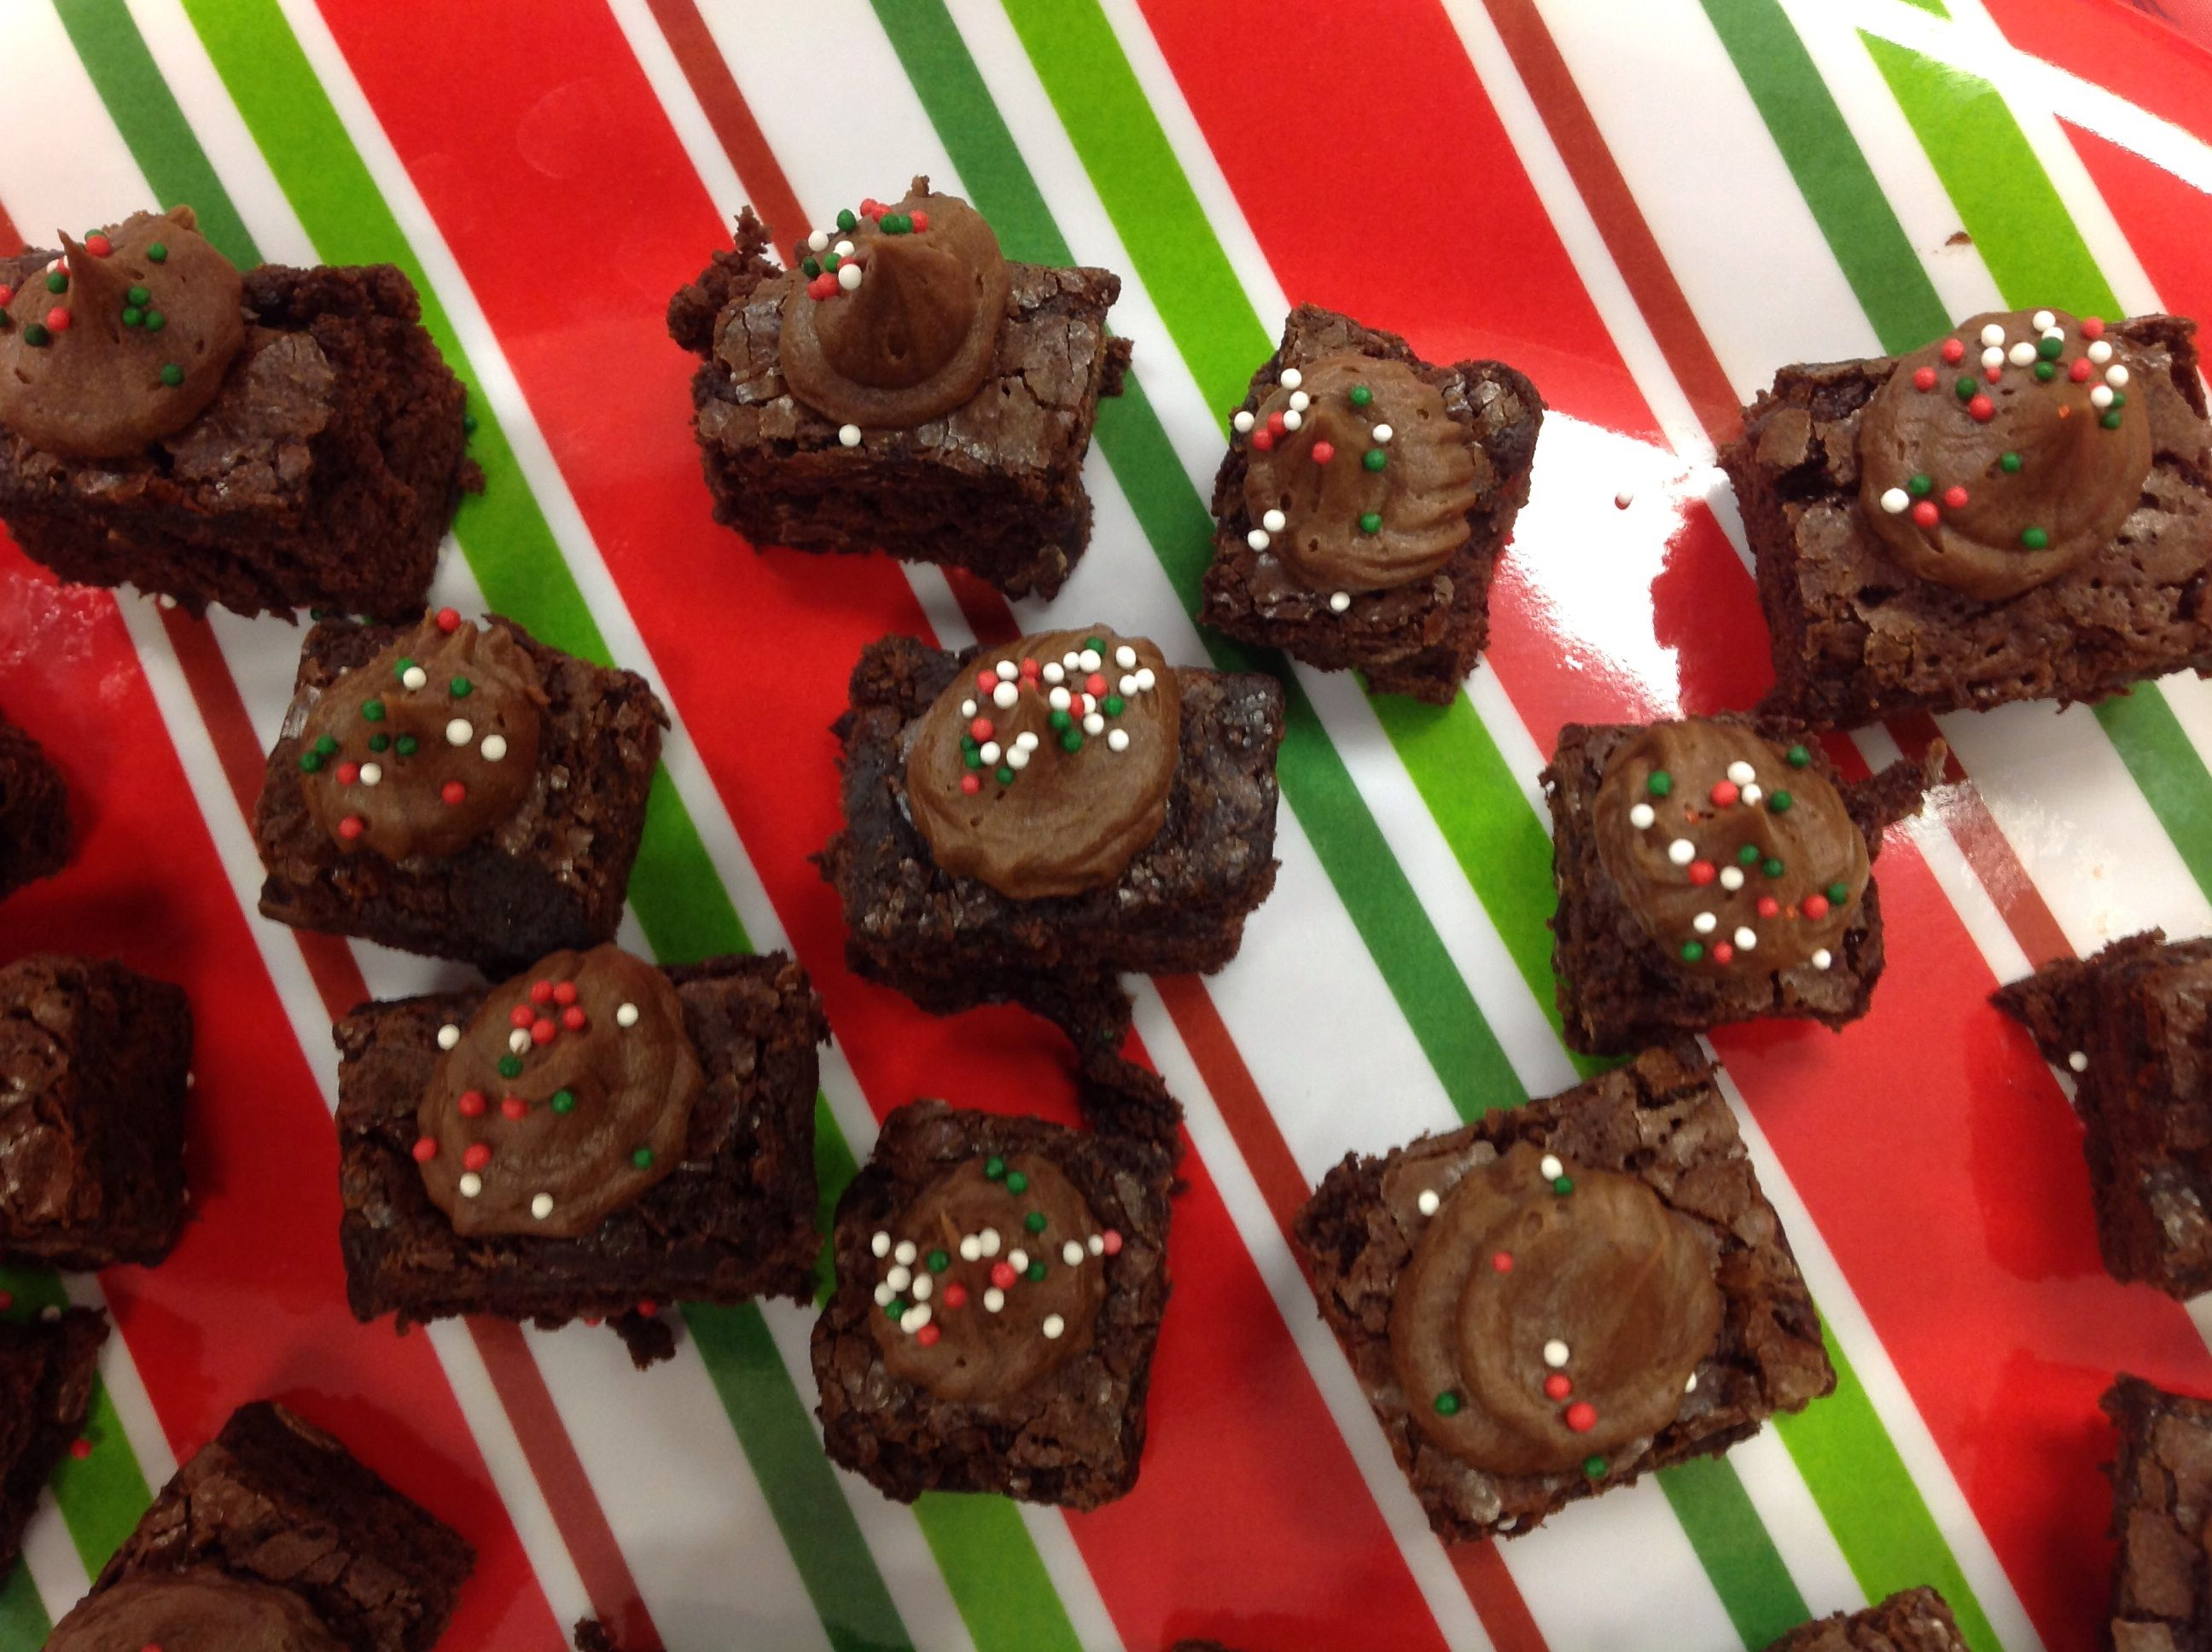 Holiday brownie bites made with the oodletip holiday